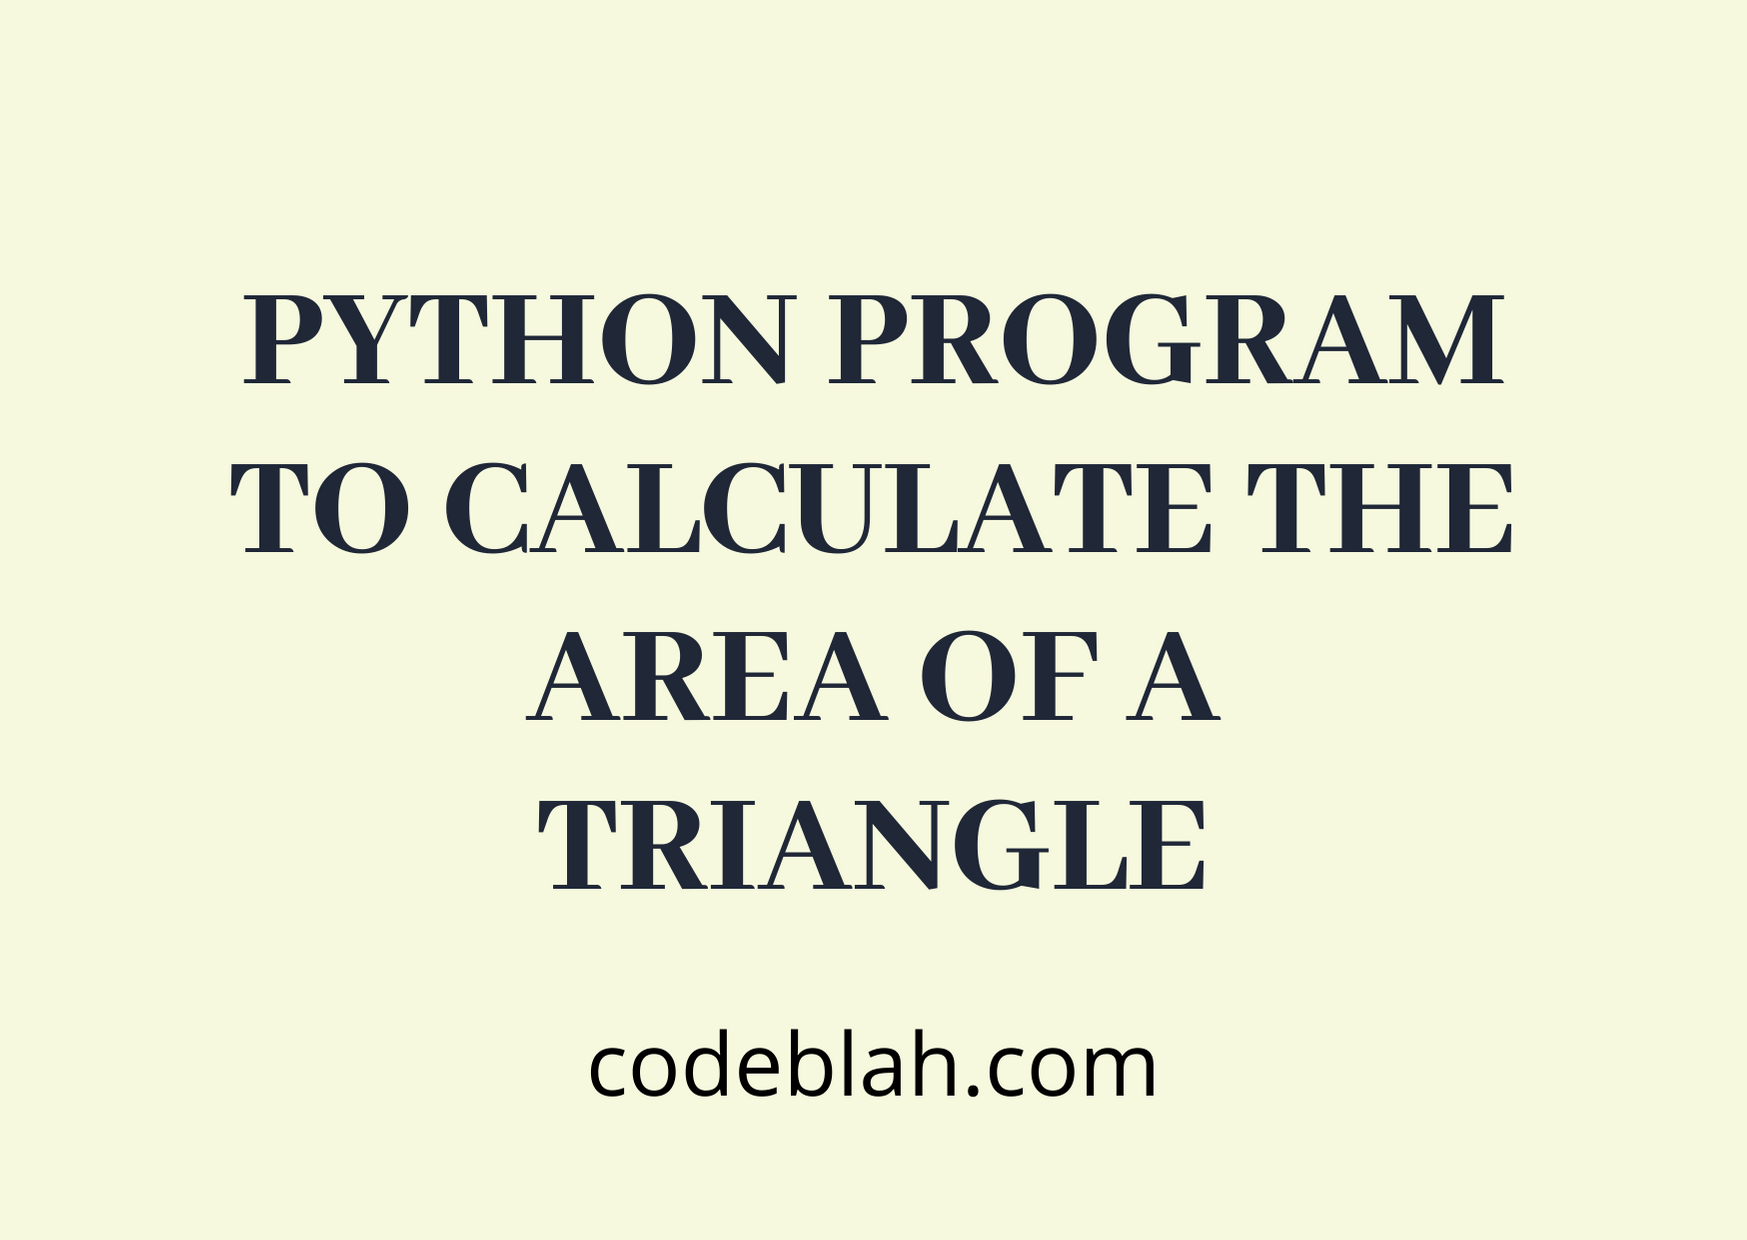 Python Program to Calculate the Area of a Triangle